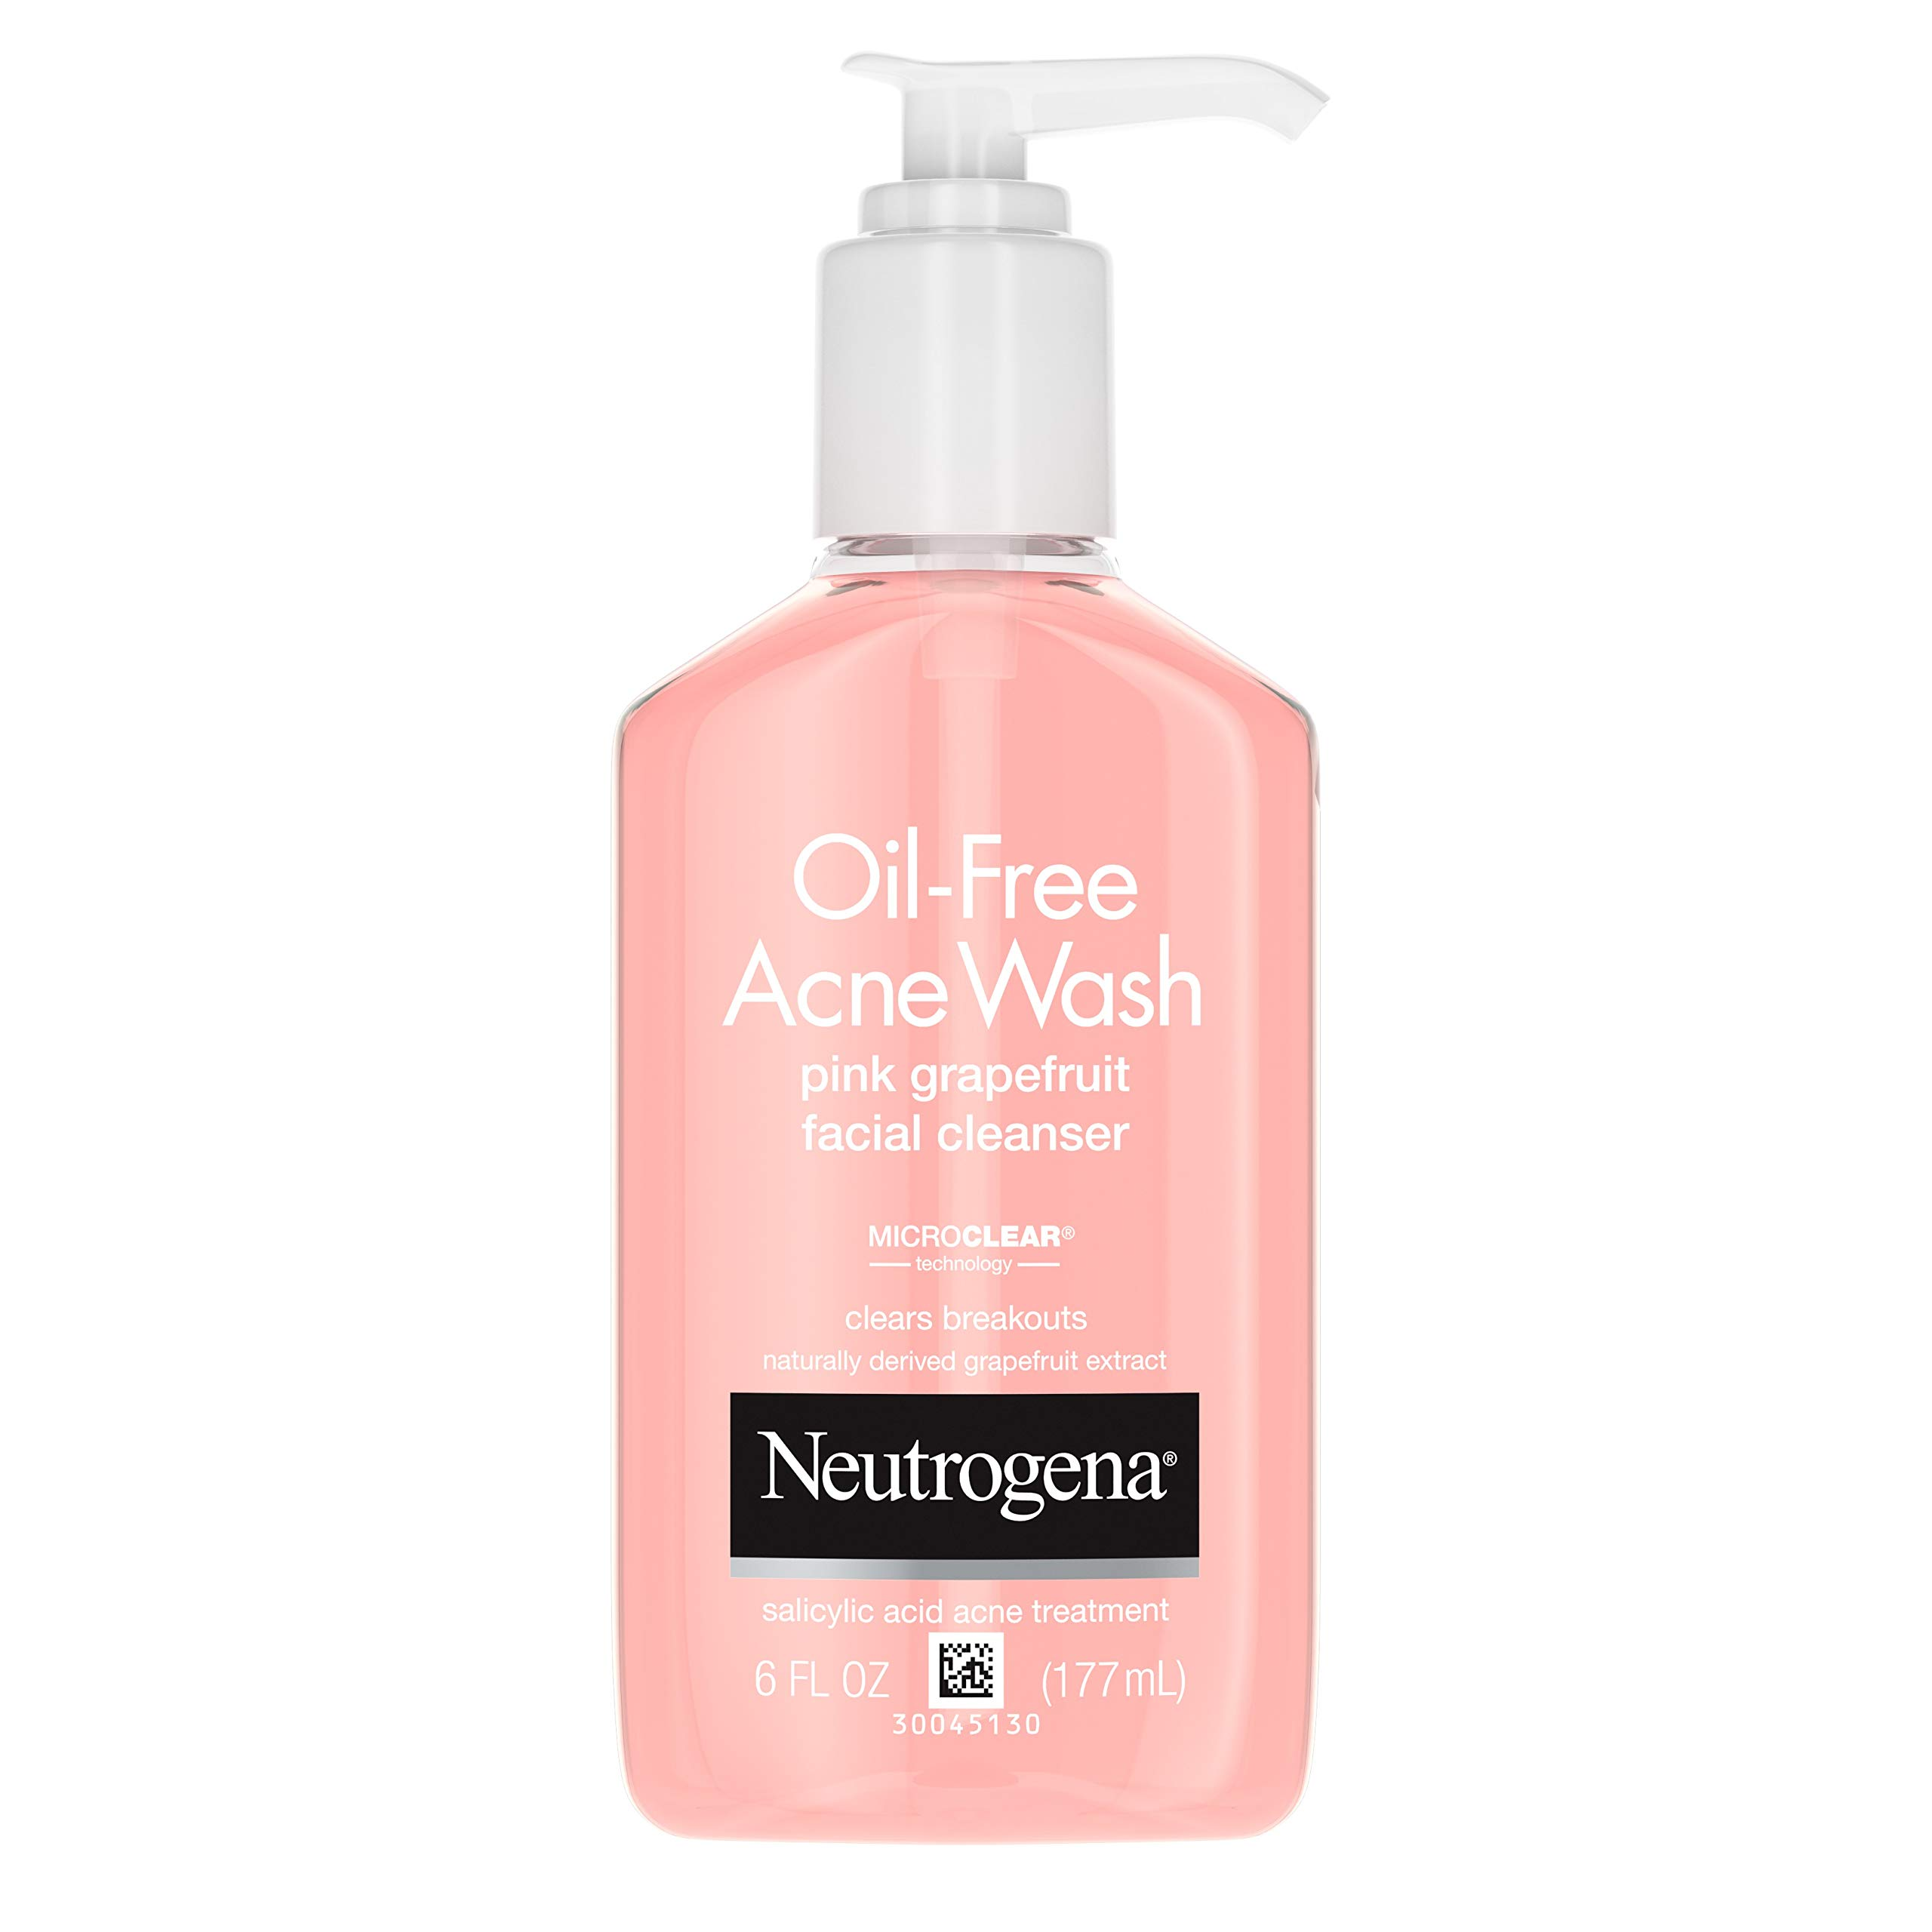 Neutrogena Oil-Free Pink Grapefruit Pore Cleansing Acne Wash and Daily Liquid Facial Cleanser with 2% Salicylic Acid…